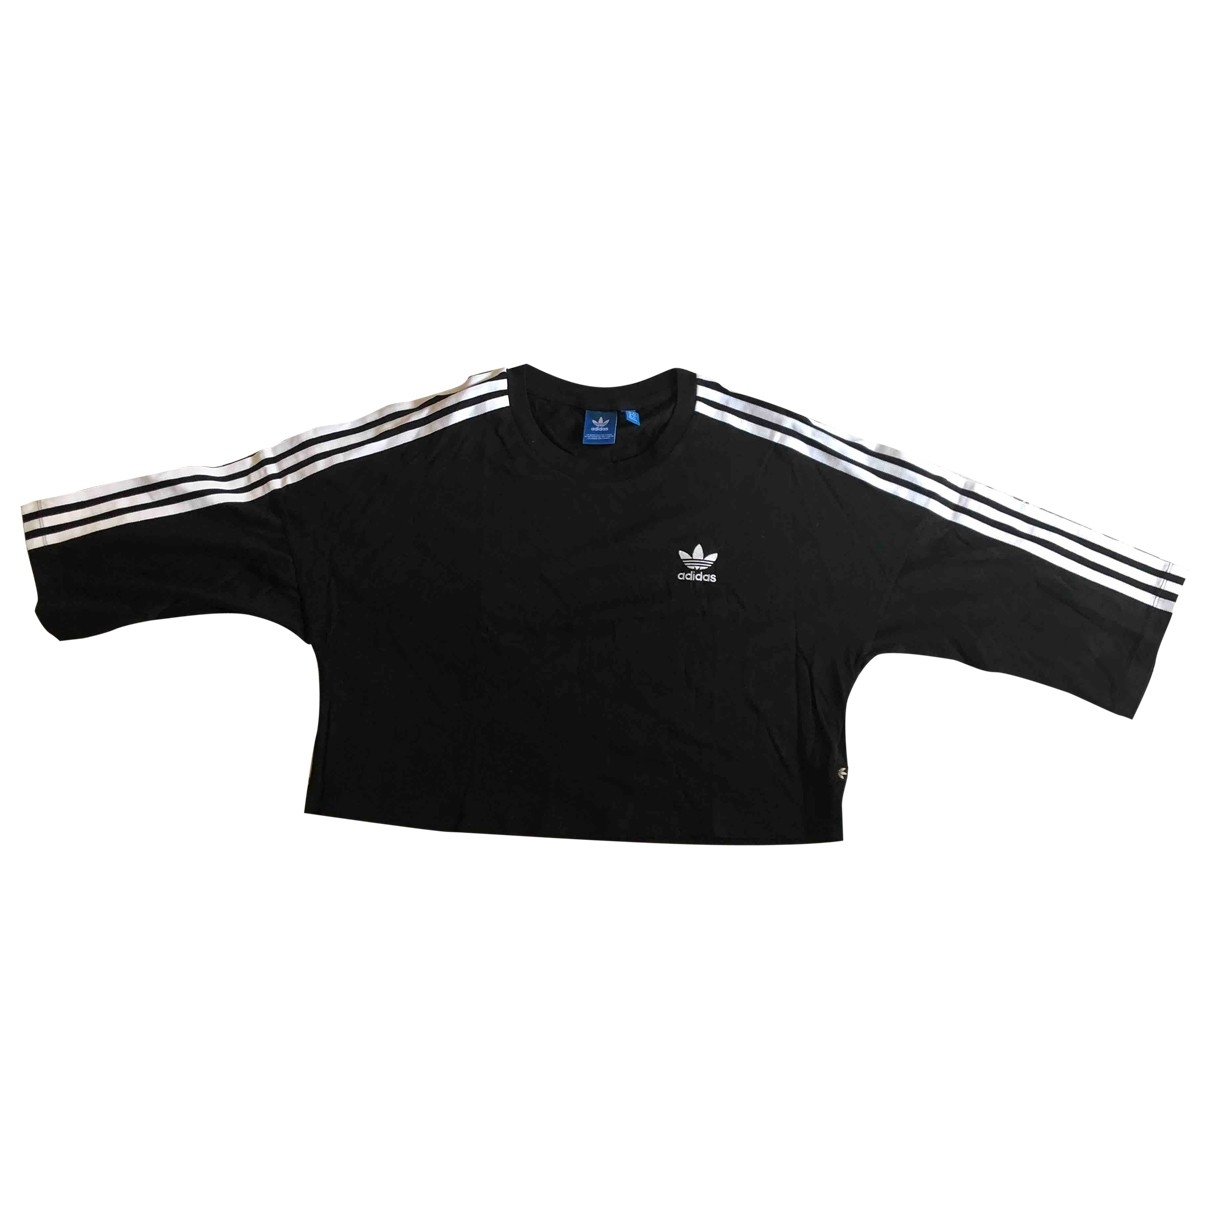 Adidas \N Black Cotton  top for Women 44 IT